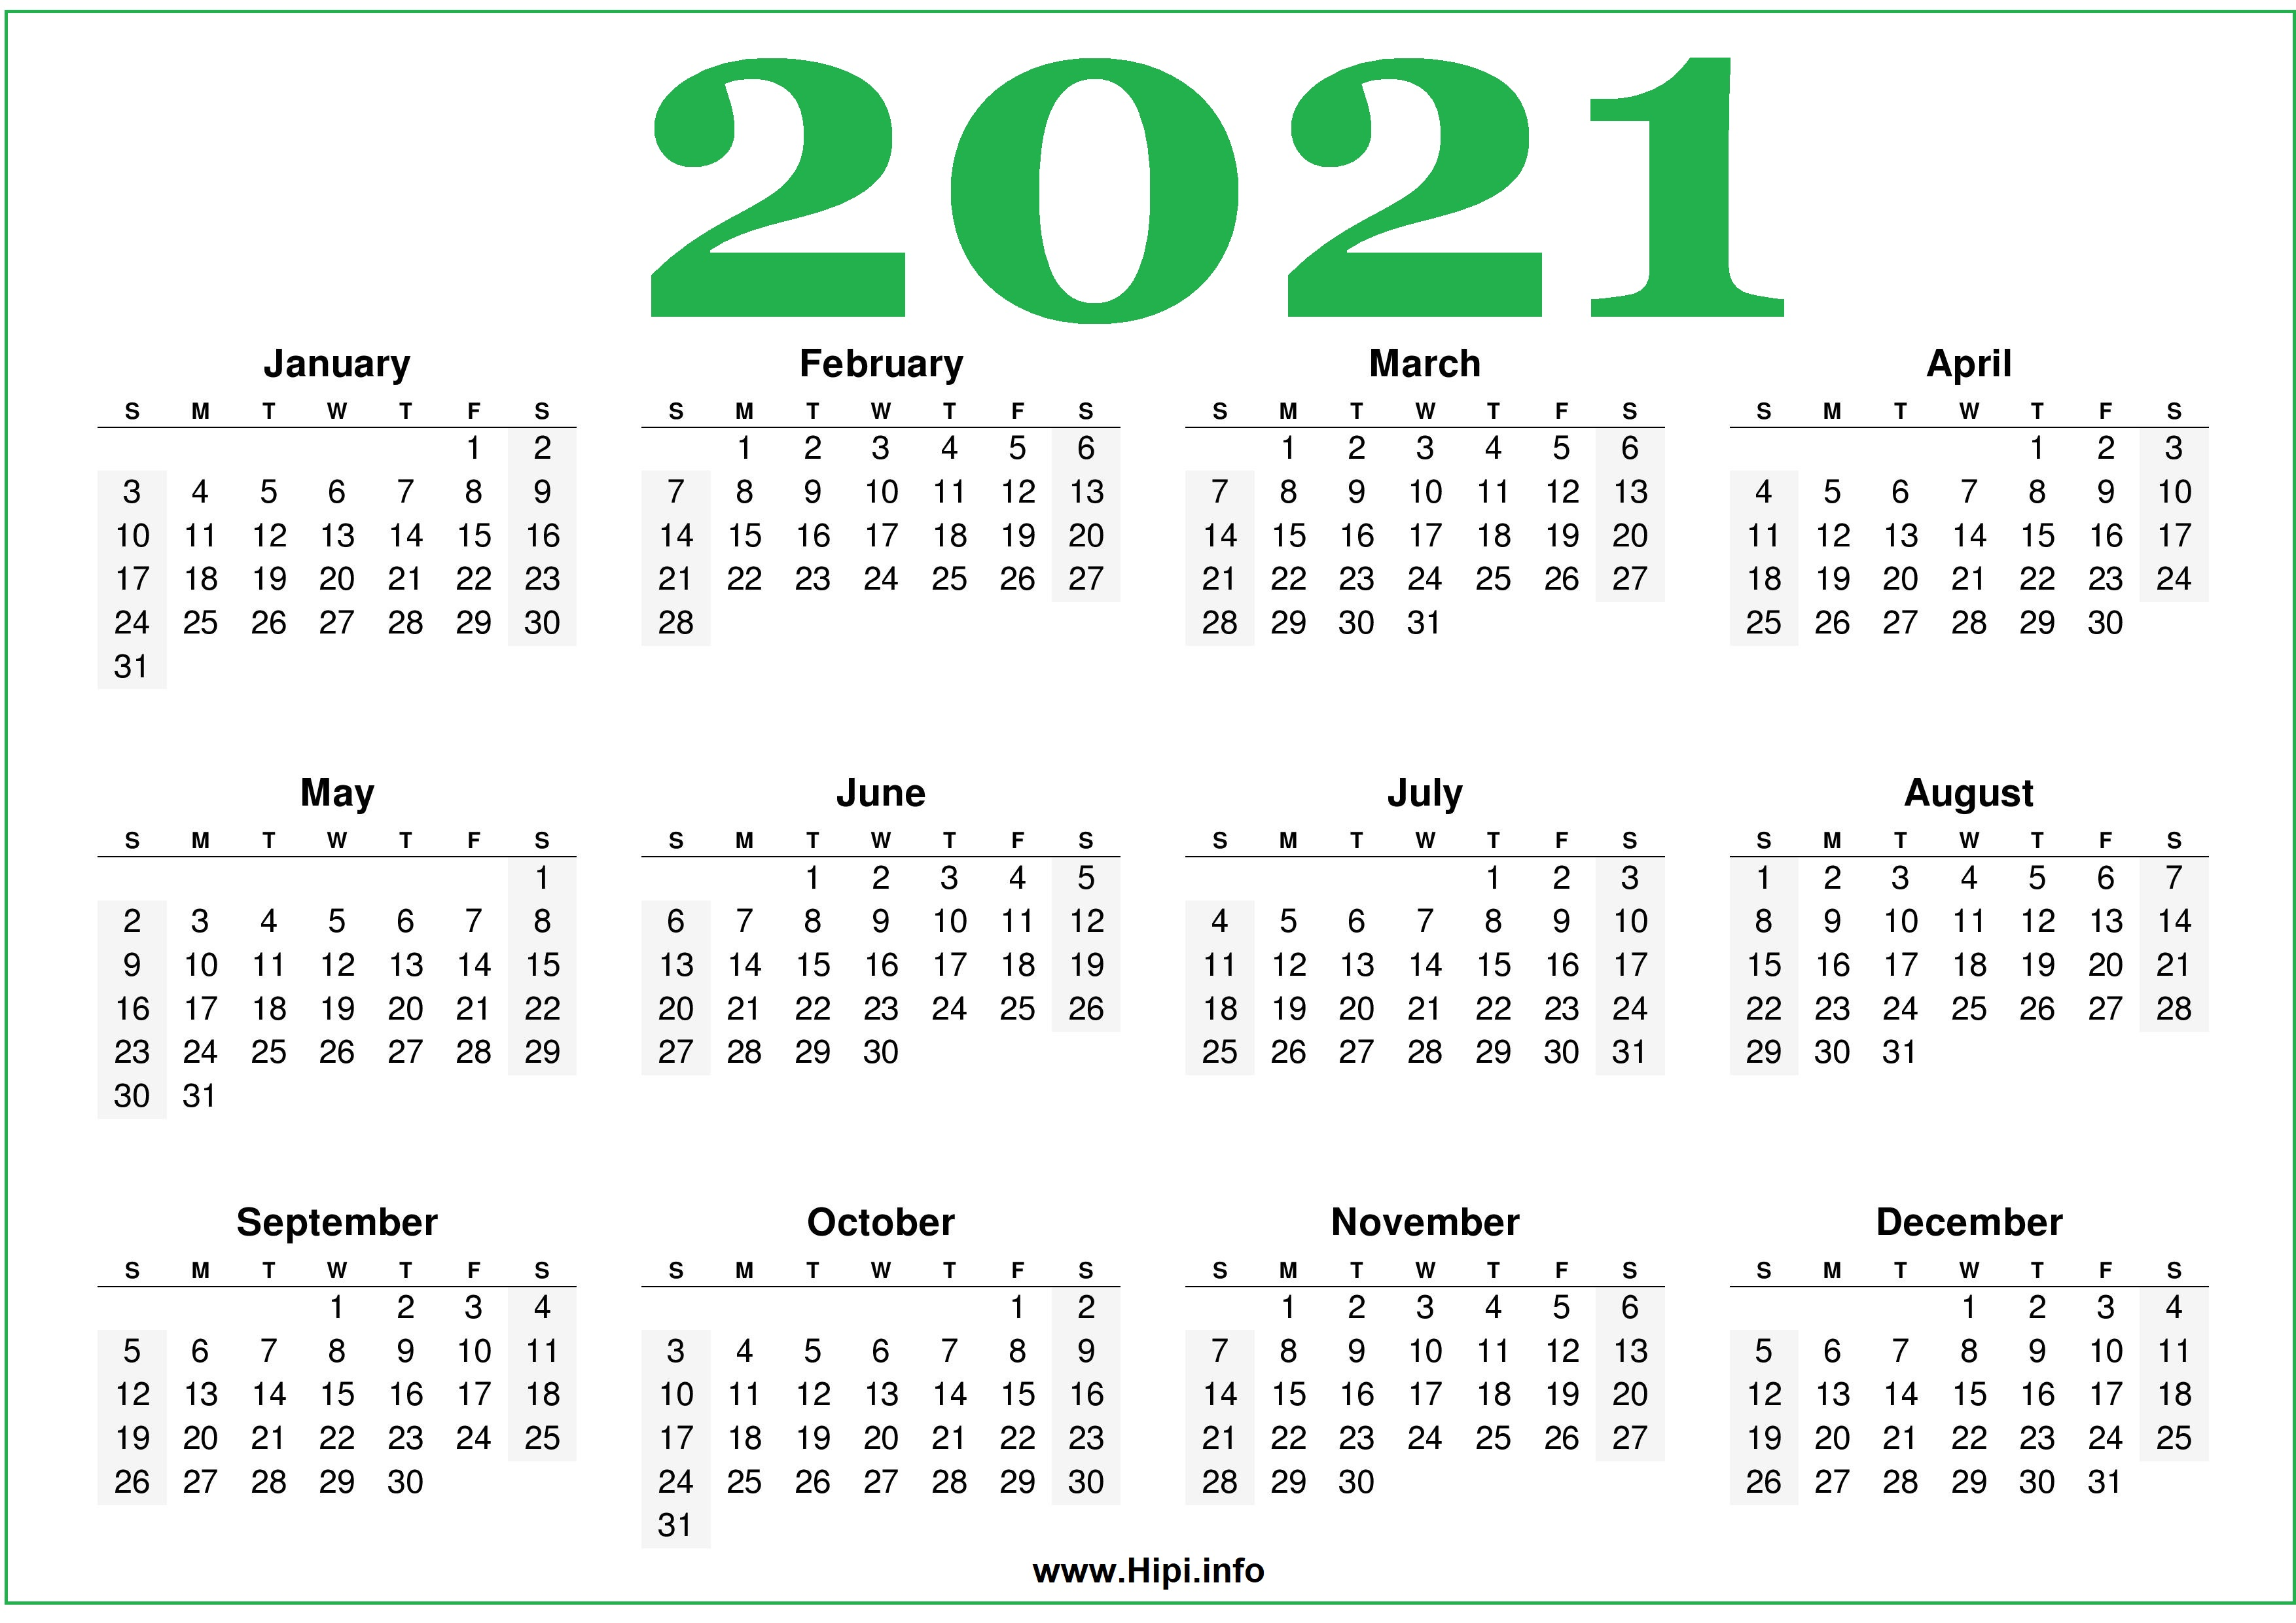 Free Printable 2021 Calendars Horizontal - Hipi.info